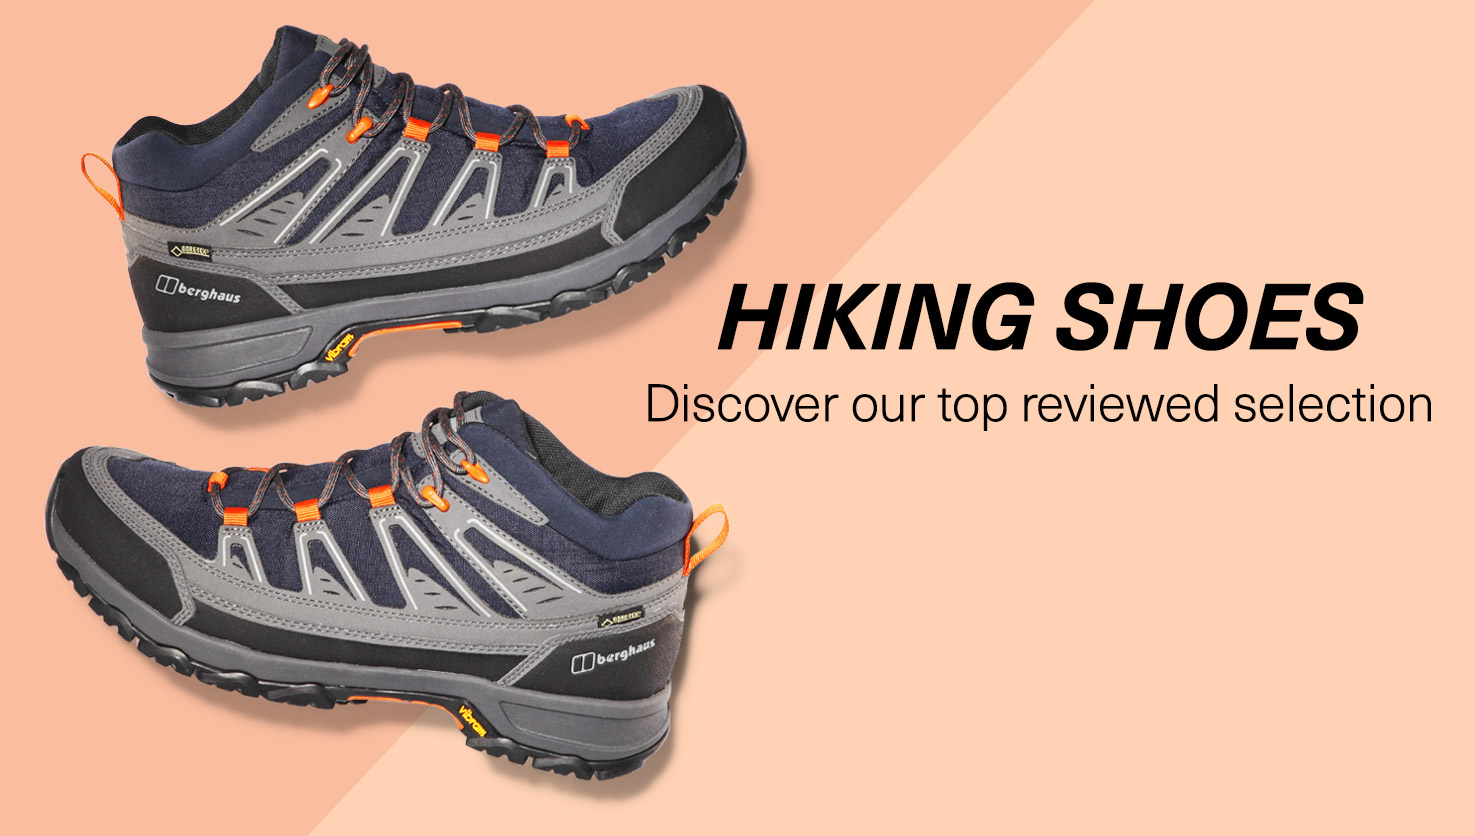 Top reviewed hiking shoes